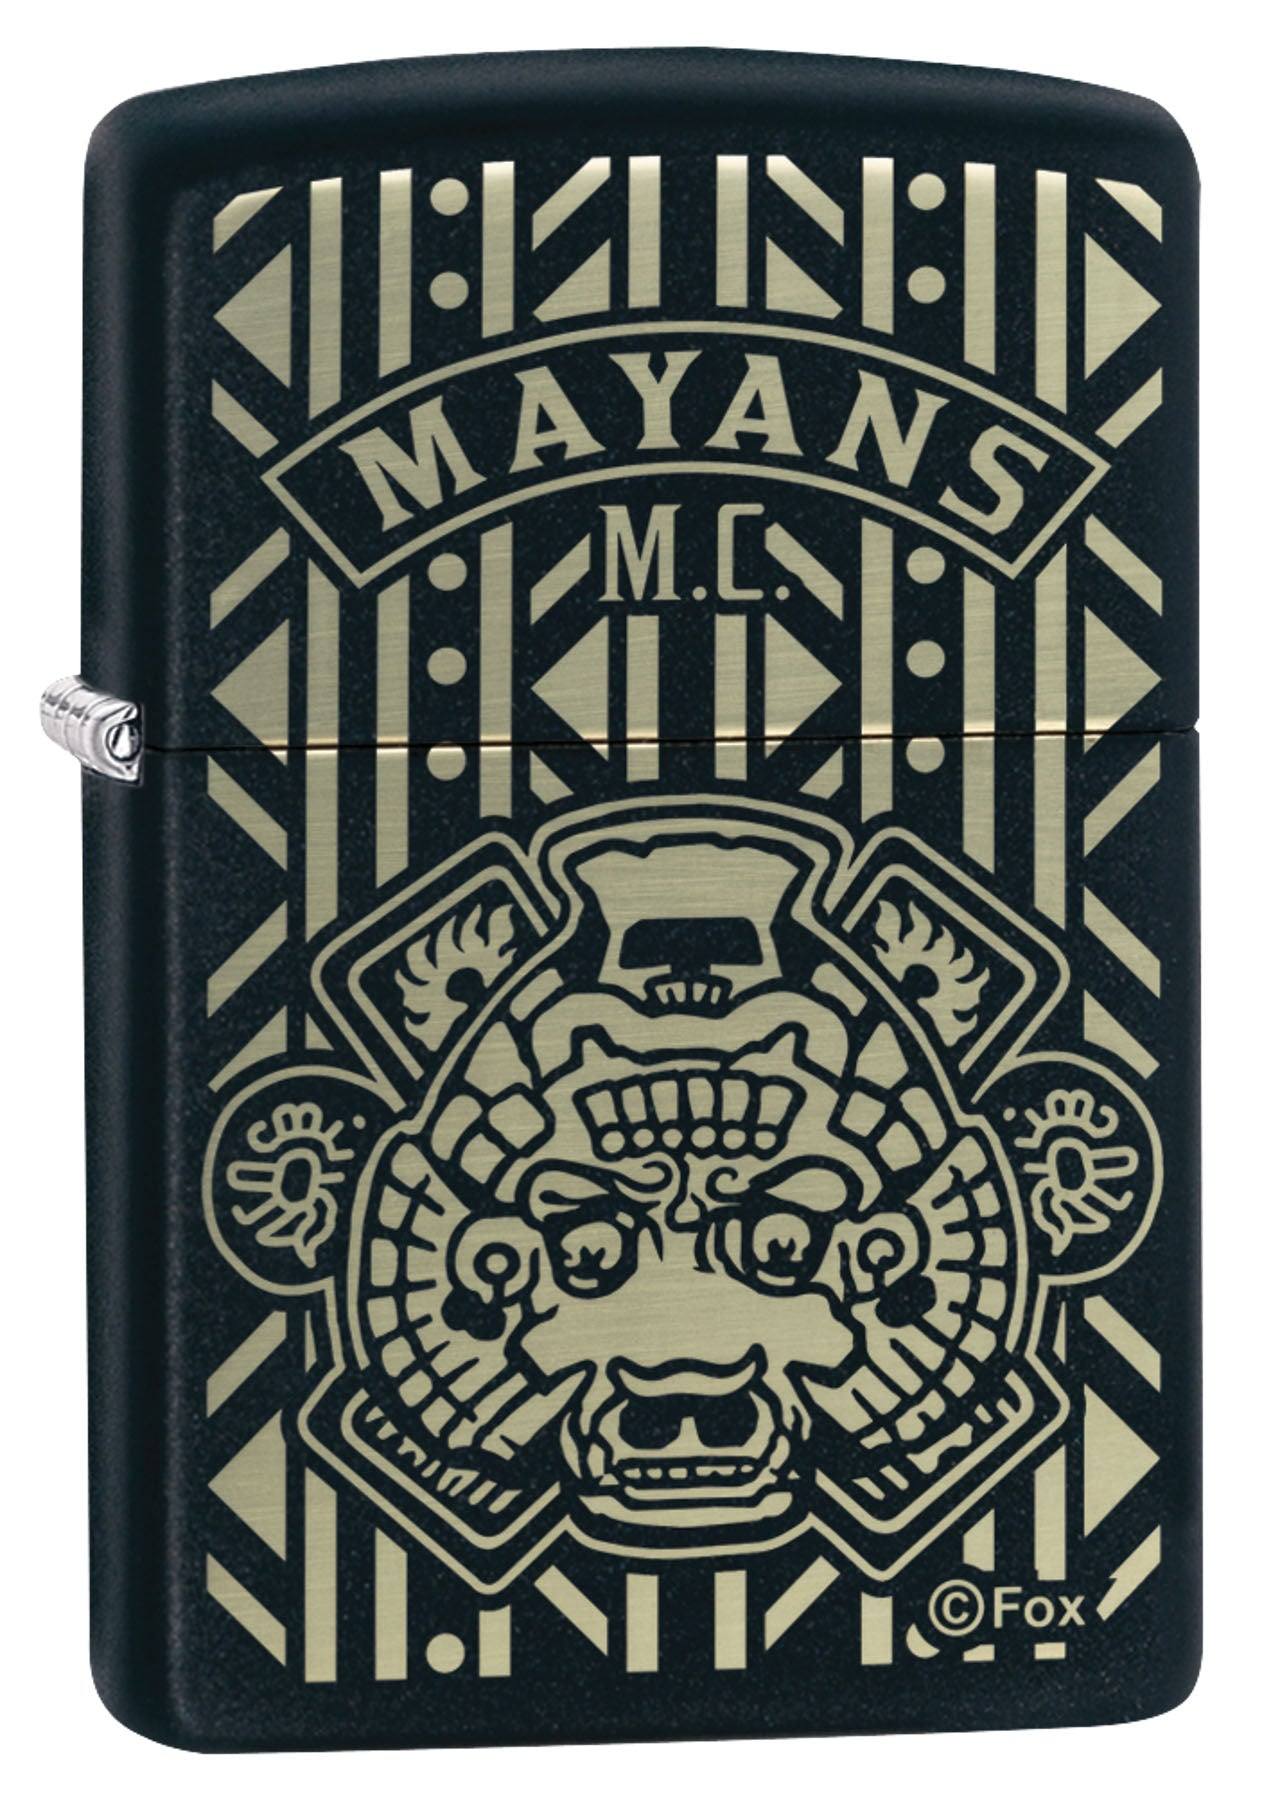 Zippo Lighter: Mayans M.C., Engraved - Black Matte 49087